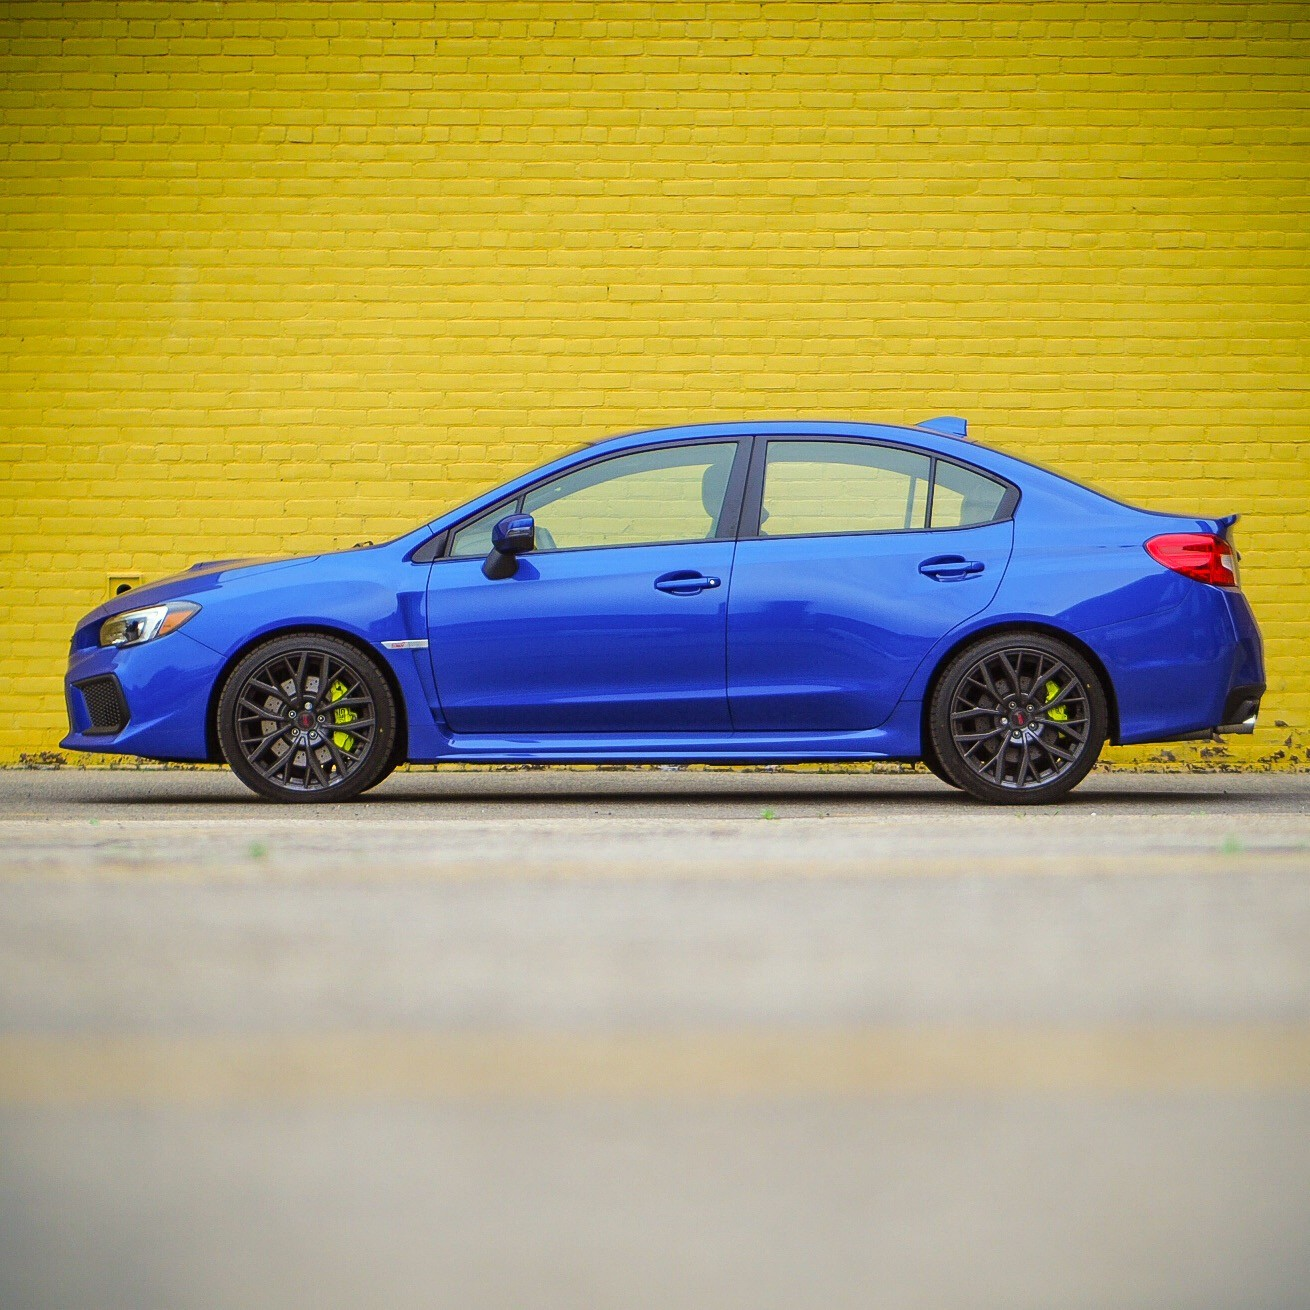 Review 2018 Subaru Wrx Sti Pfaff Auto 19 Inch Wheels On Under The Stis Hood Is Subarus Familiar 25 Litre Flat Four Topped By A Whopping Great Turbocharger Its Ratings Of 310 Hp And 290 Lb Ft Torque Are